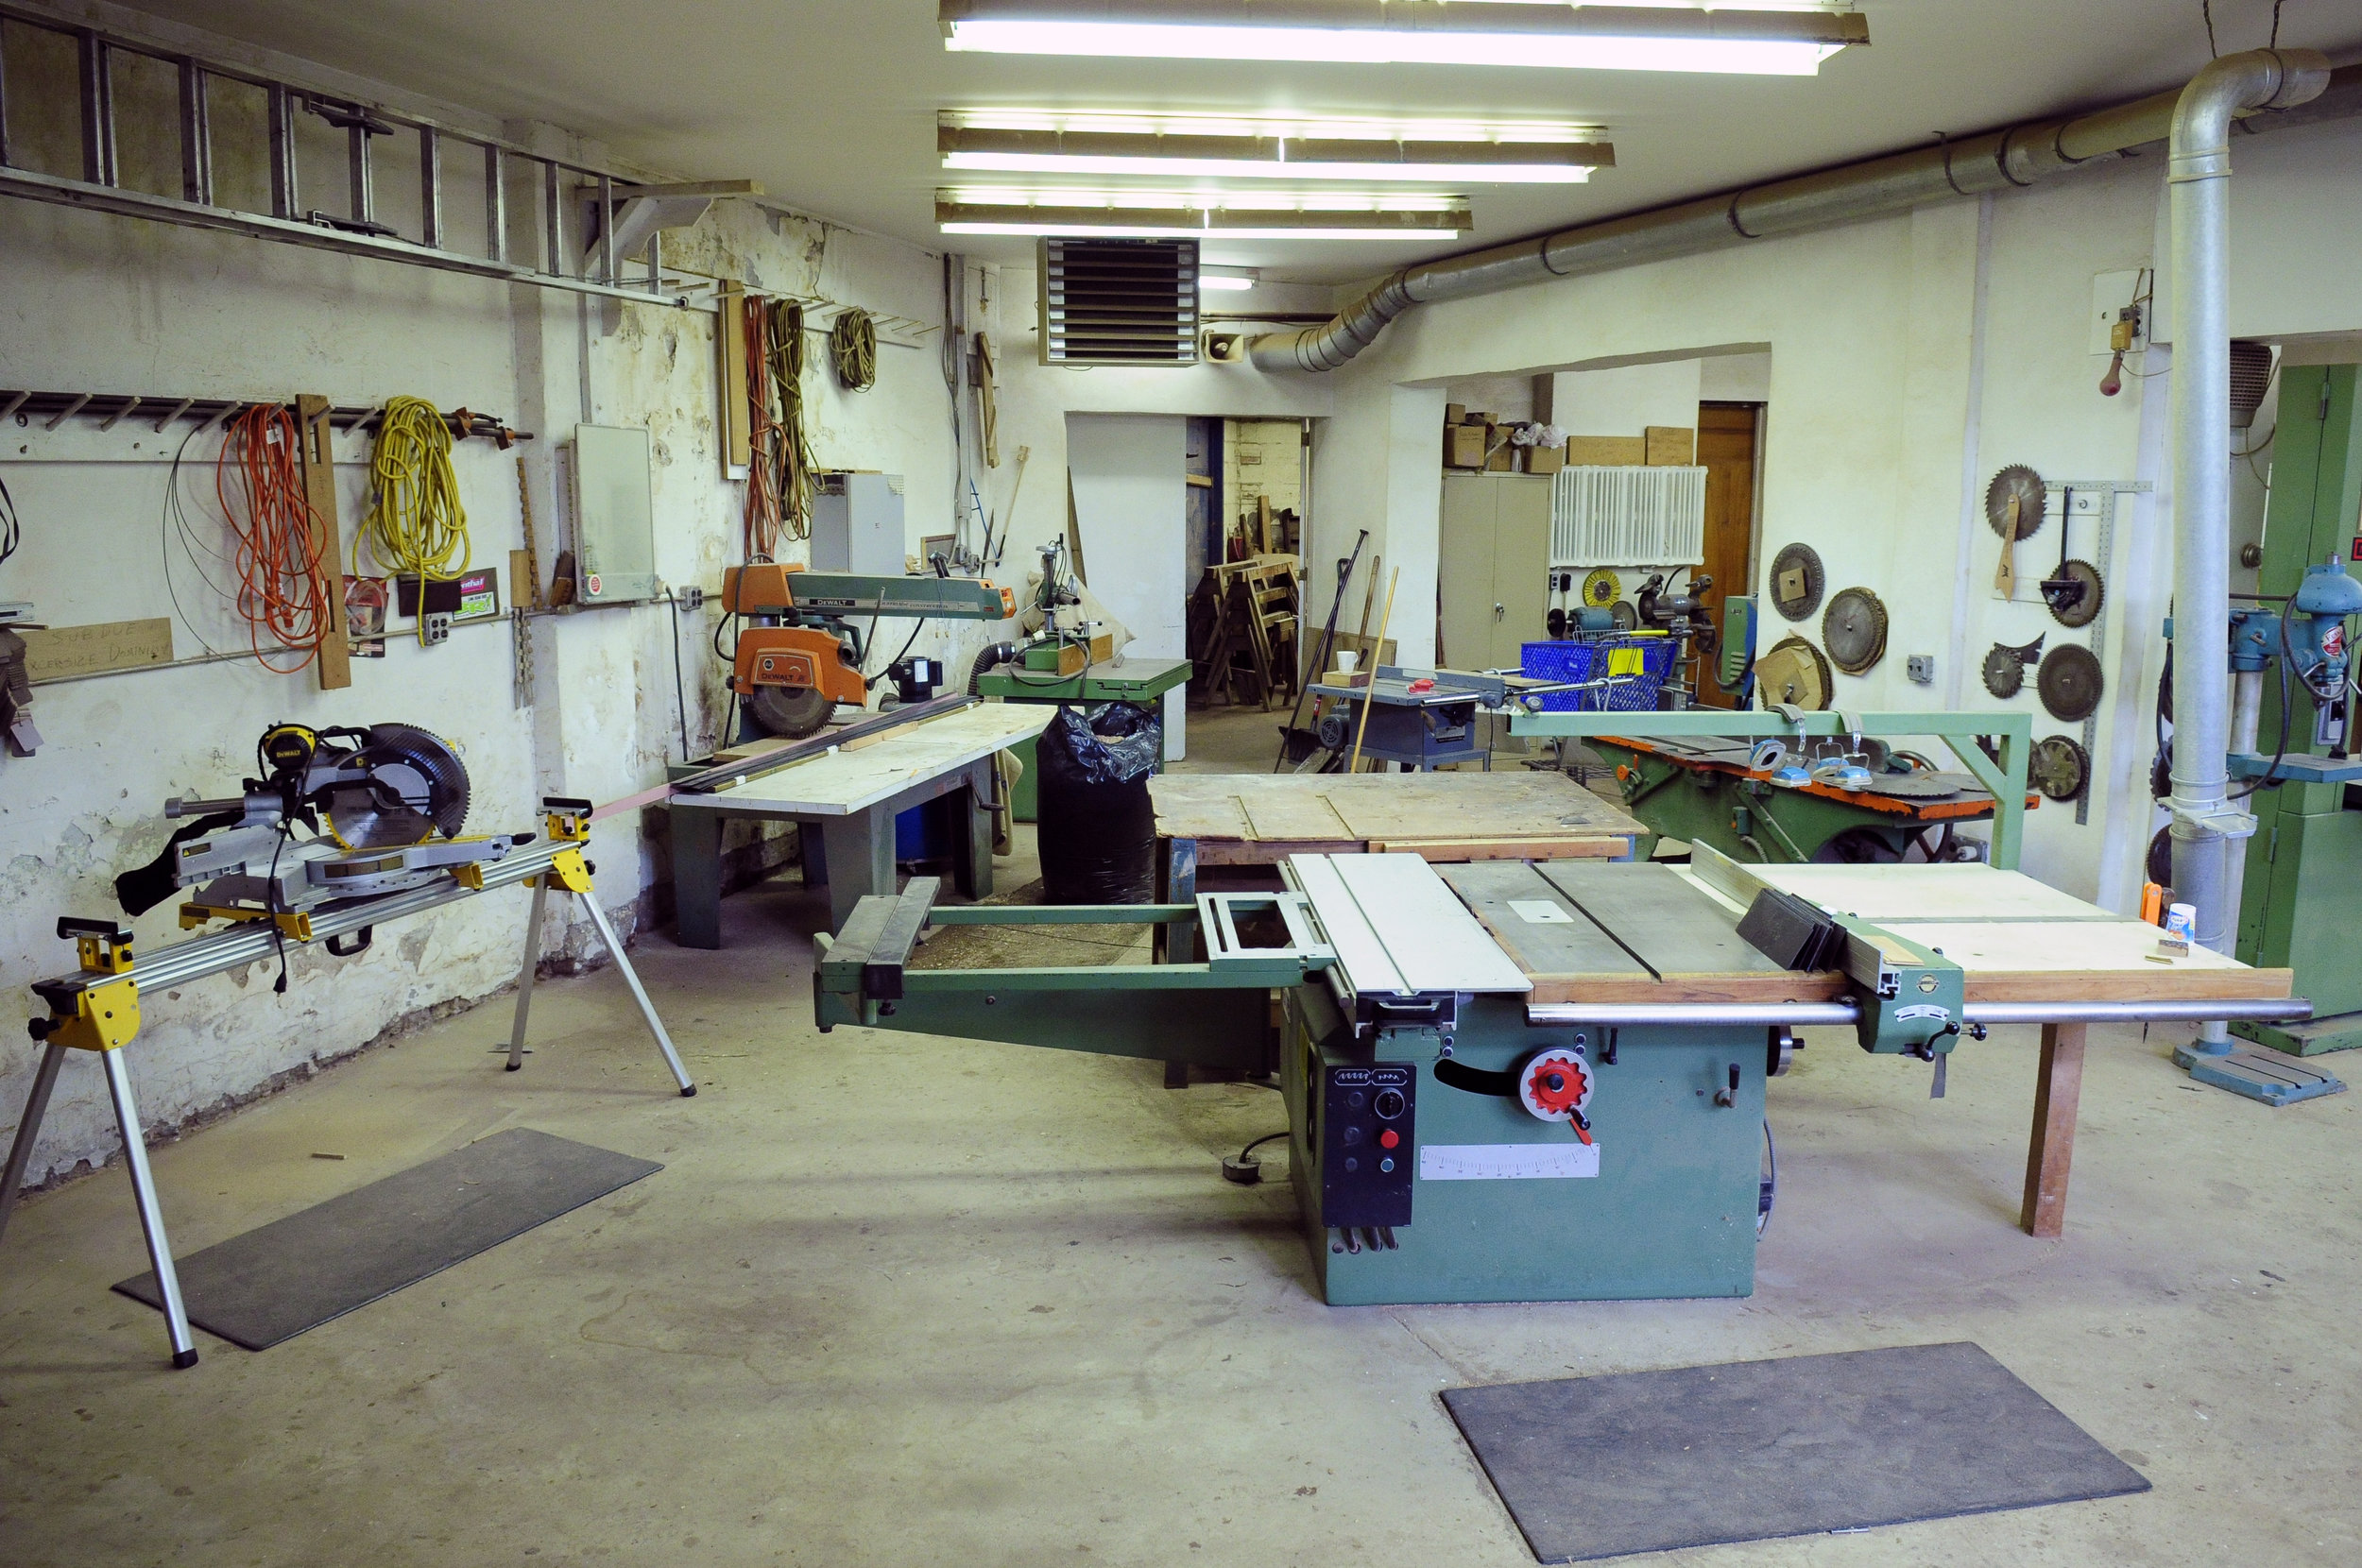 We are a fully equipped and highly customized Mill and Cabinet Shop.